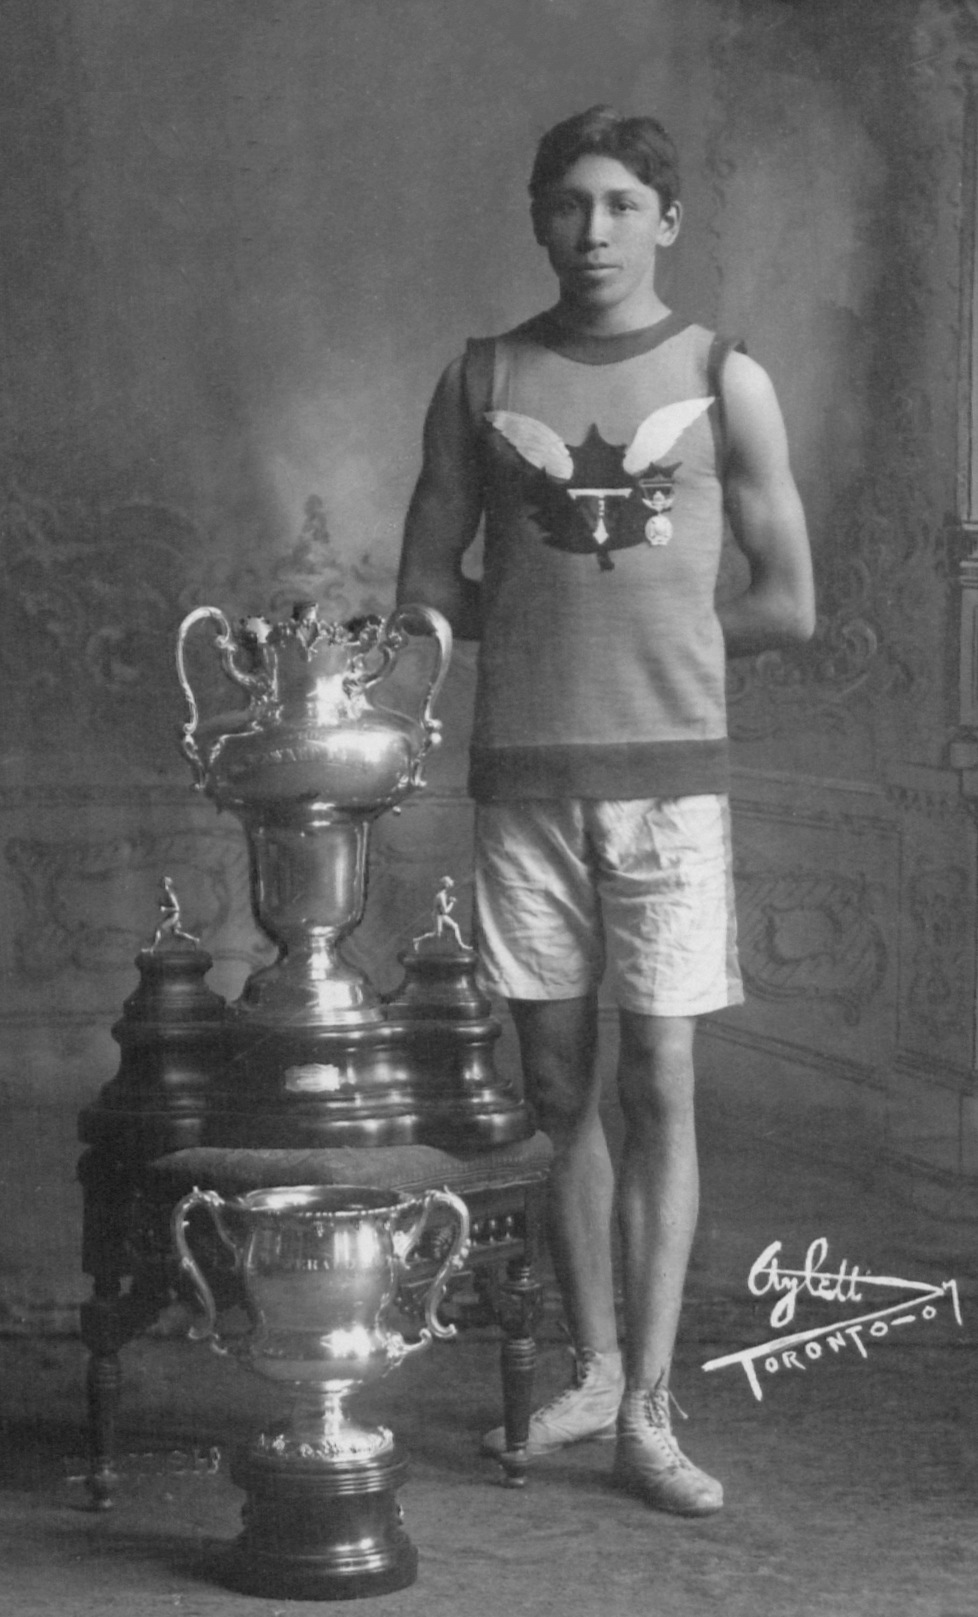 A young man poses beside two large trophies. He wears shorts, a tank top, and running shoes.